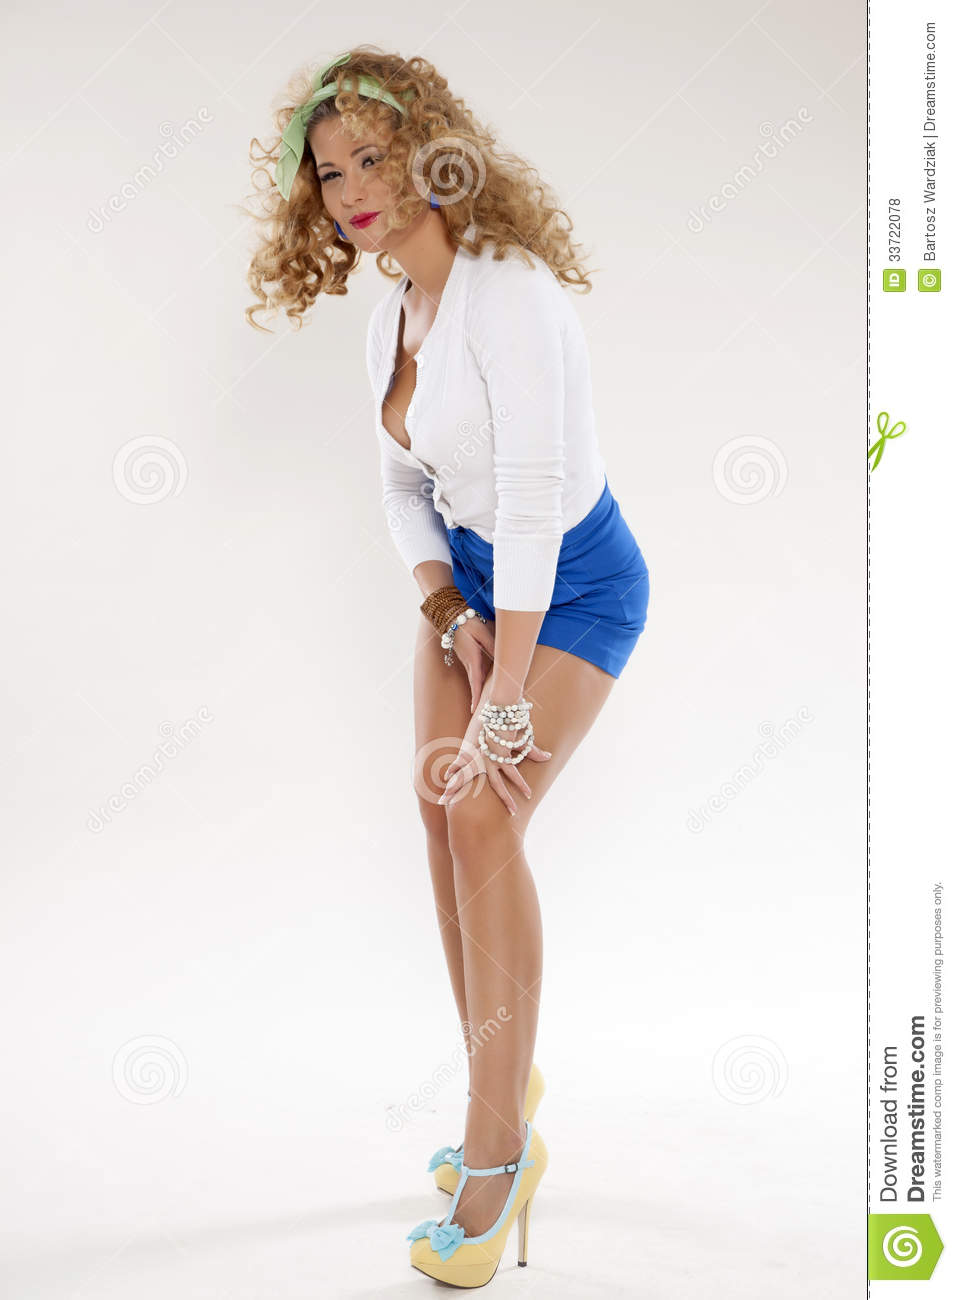 Pin Up Girl Royalty Free Stock Photos Image 33722078